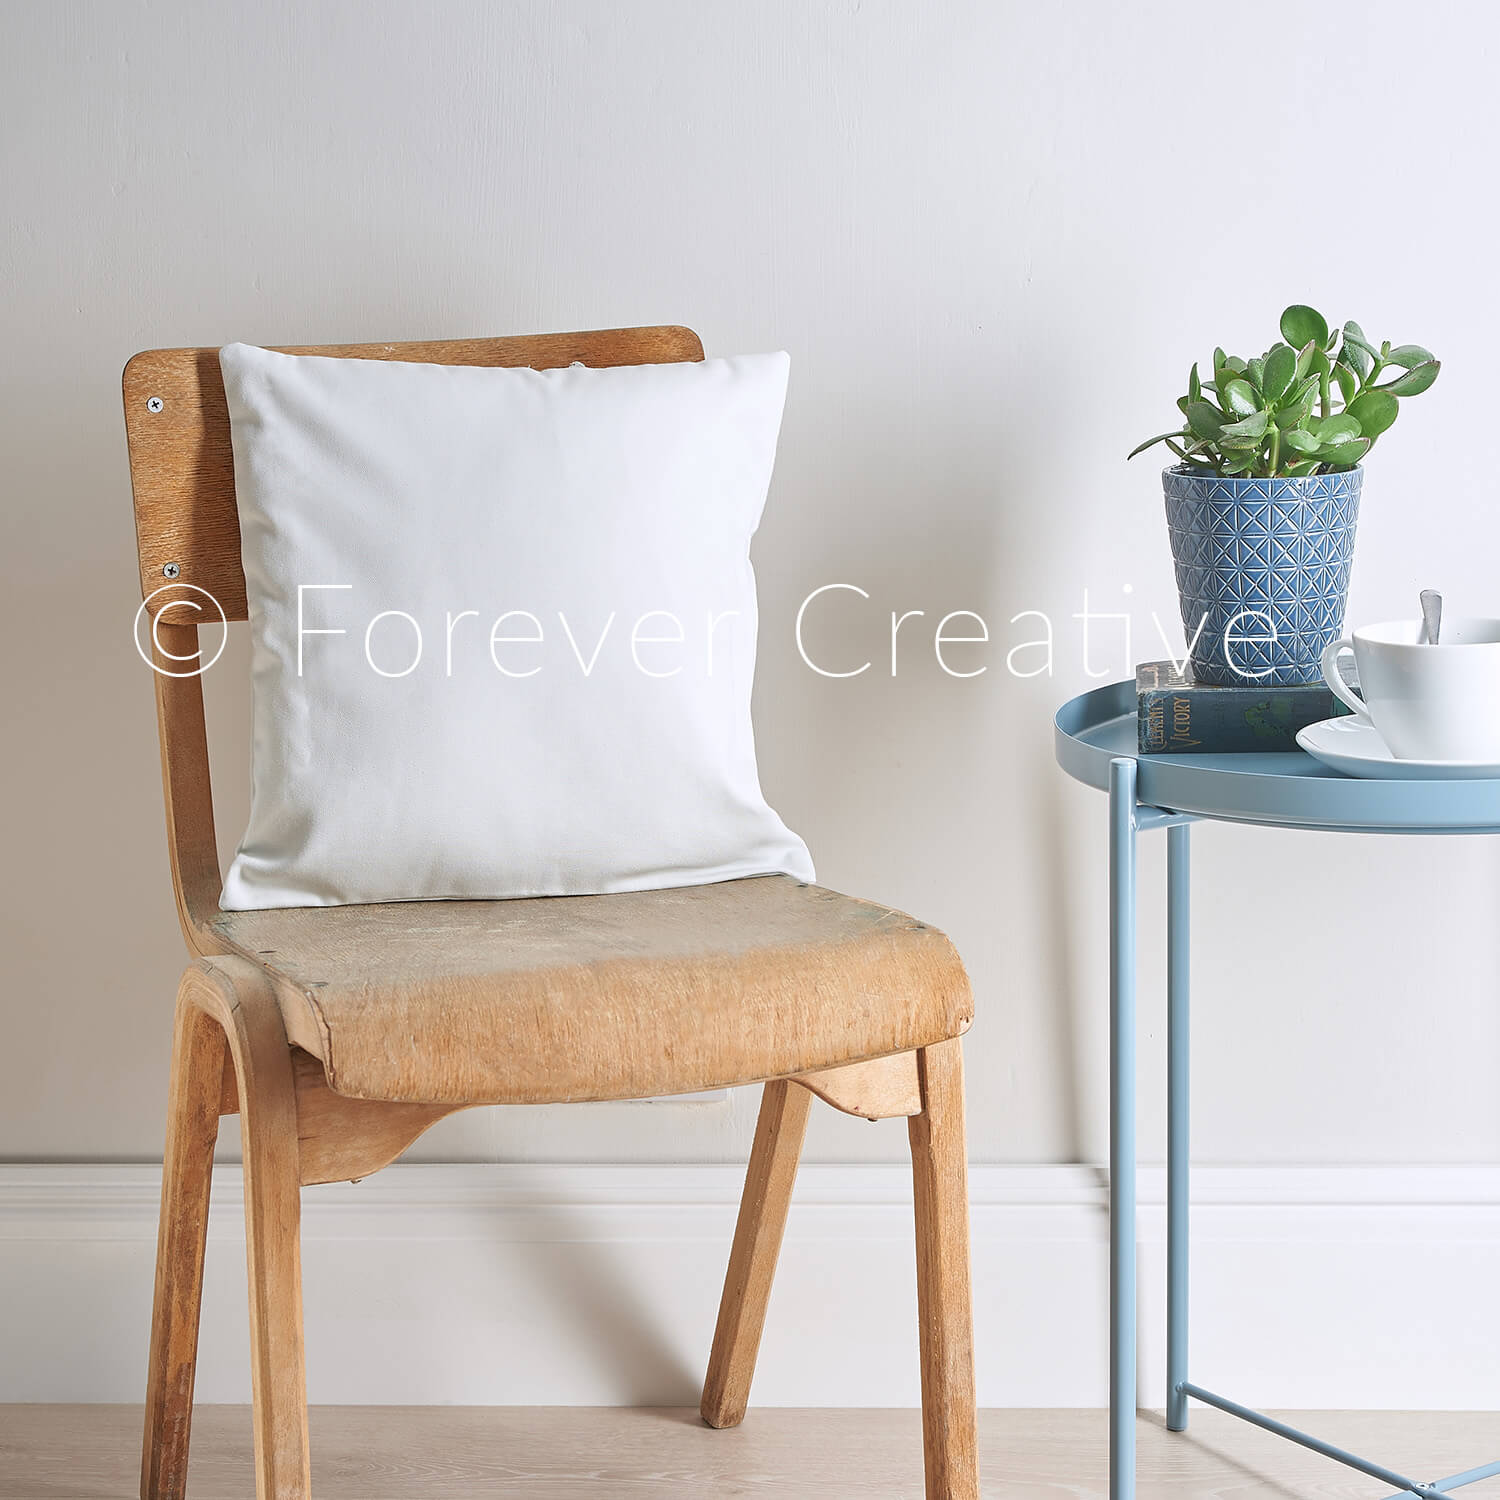 Stock photograph of a blank cushion in minimal setting ready for designer to superimpose their artwork